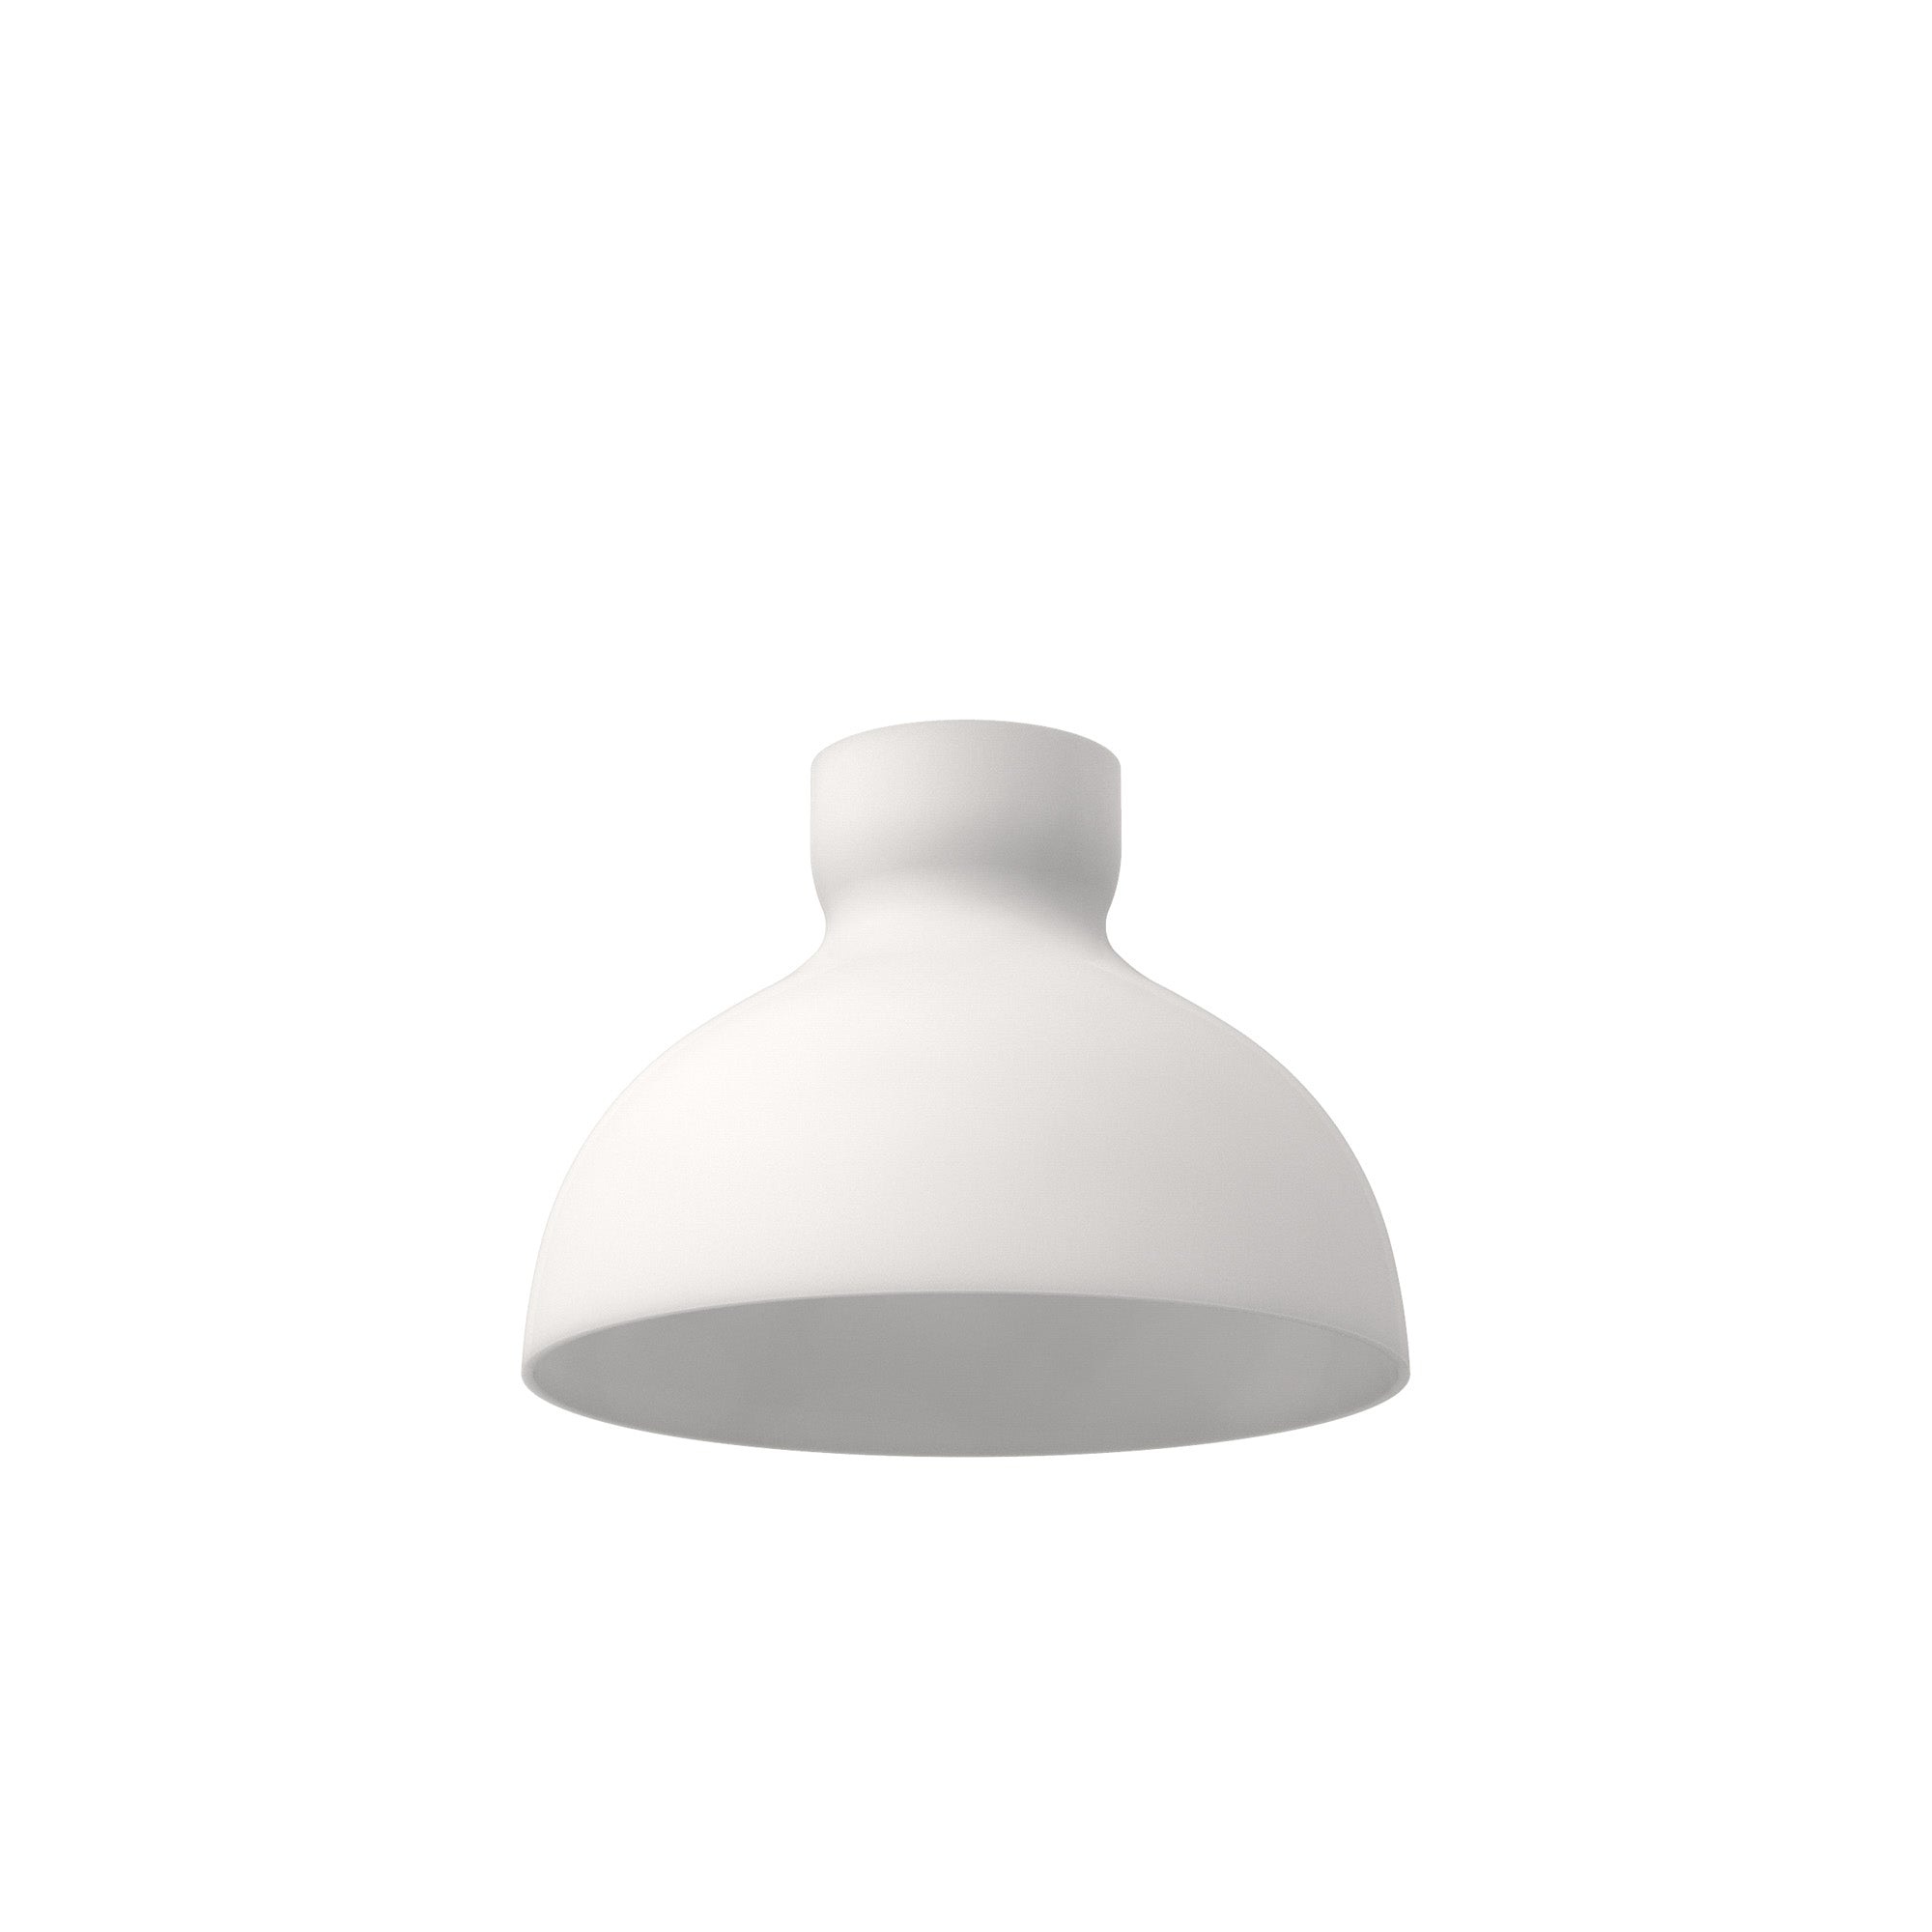 Replacement glass shade for Arenzano lamp